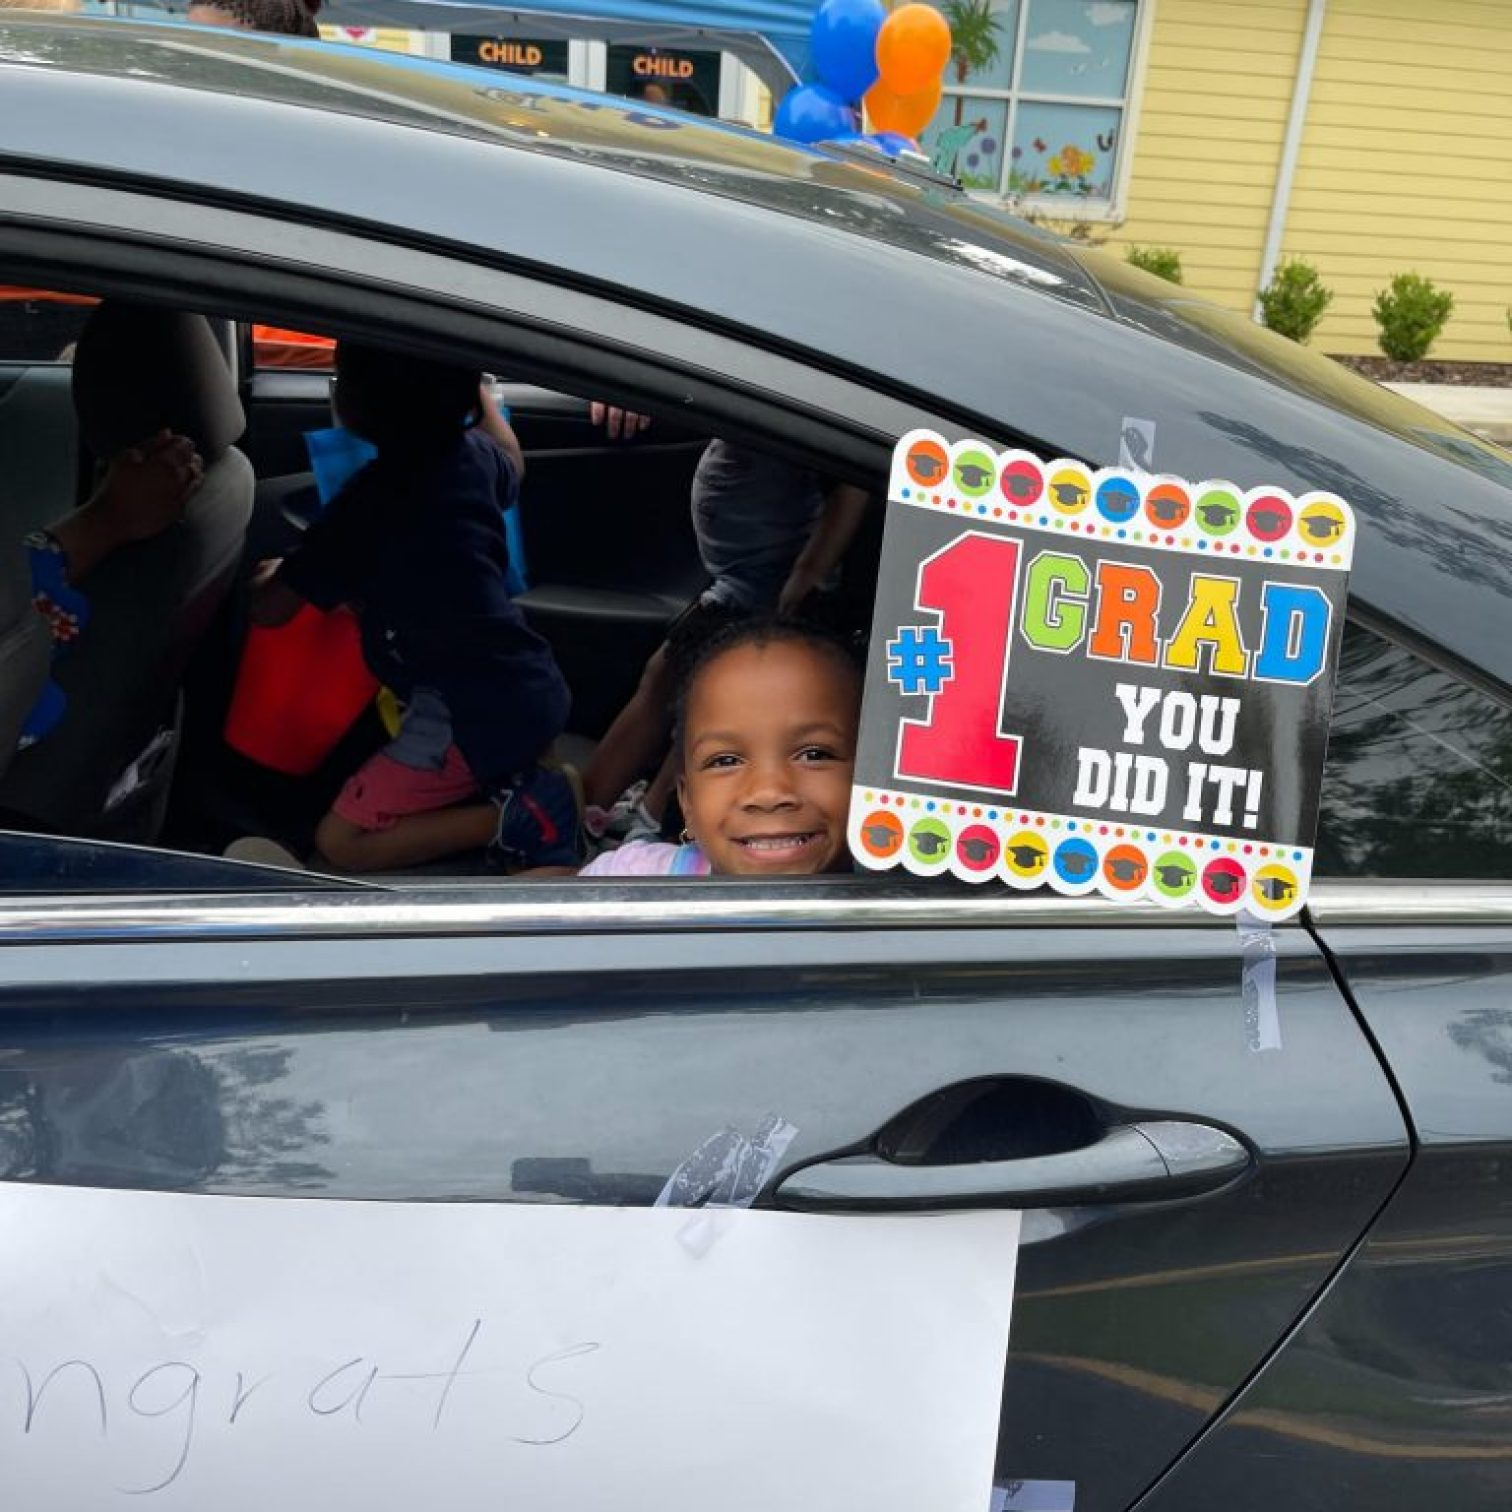 """A child smiles out the window of a car decorated with a sign that reads, """"#1 GRAD, YOU DID IT!"""""""